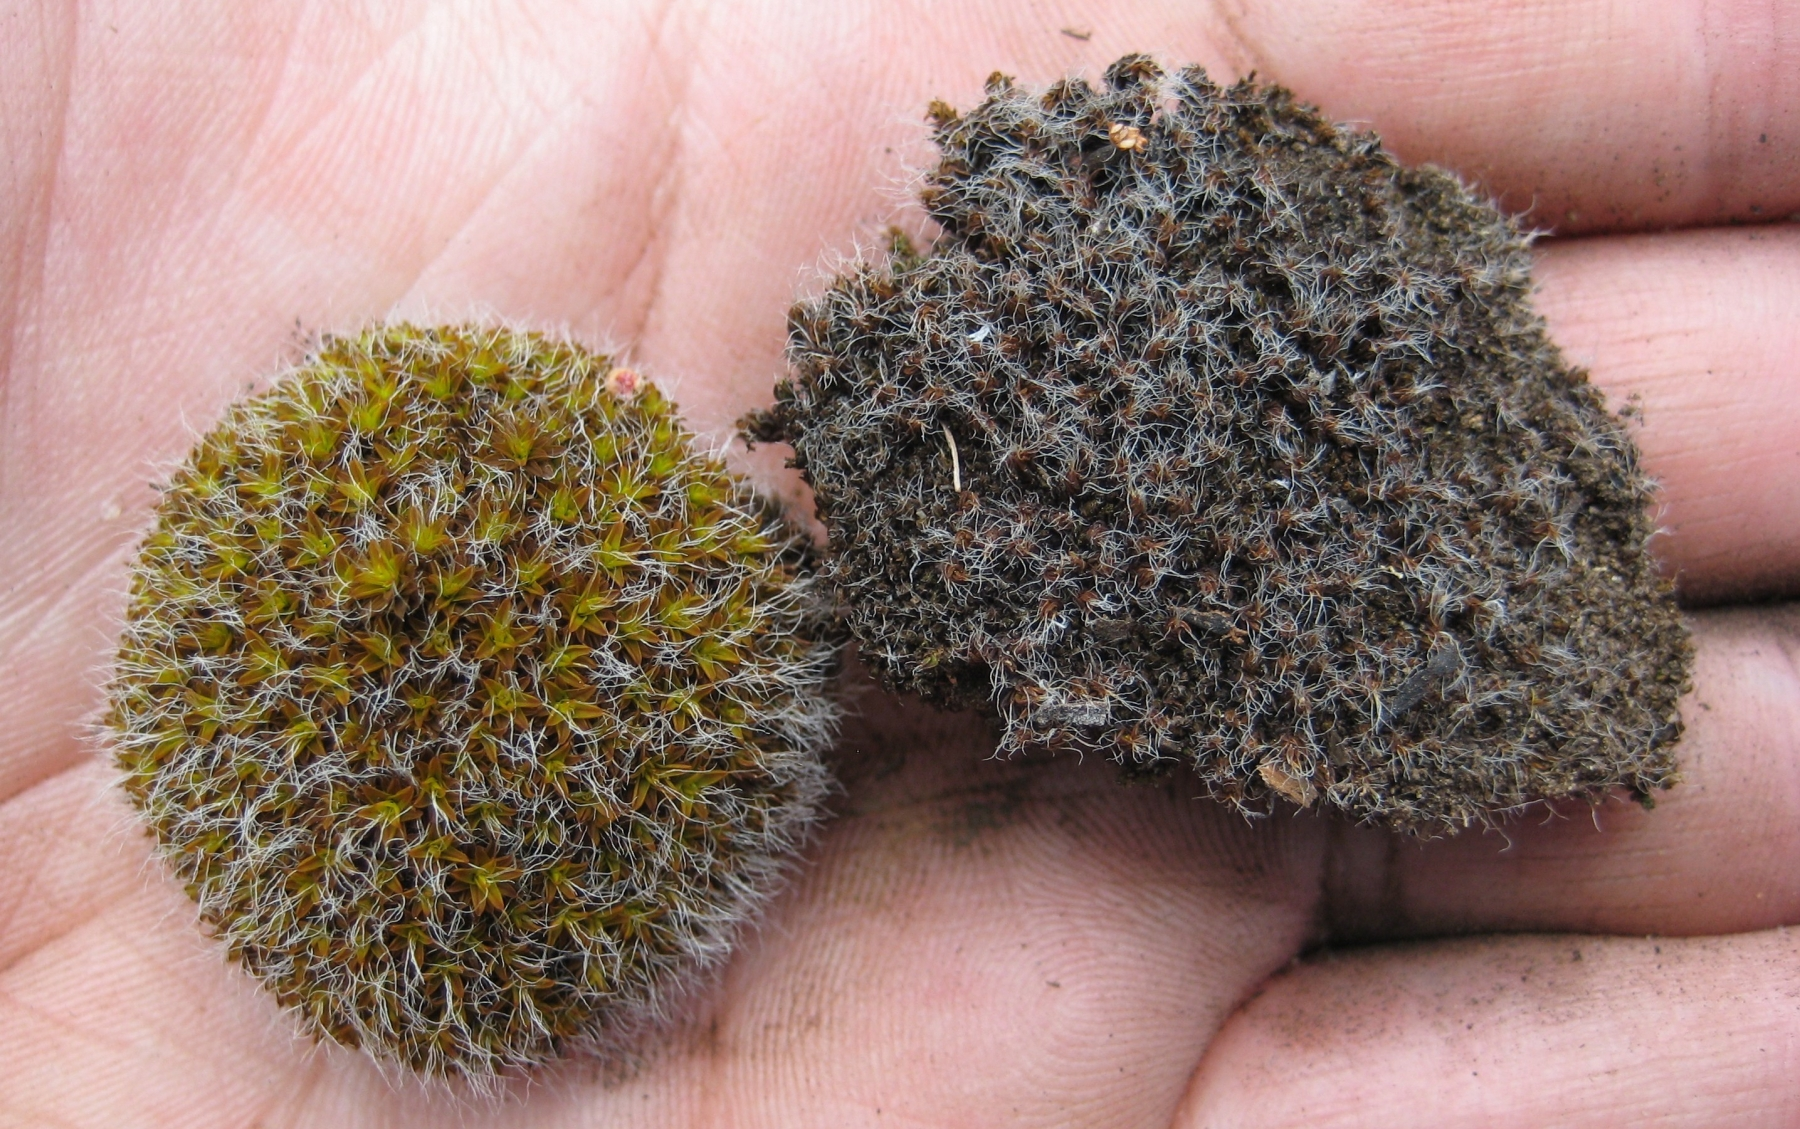 Syntrichia ruralis wet (left) and dry (right)